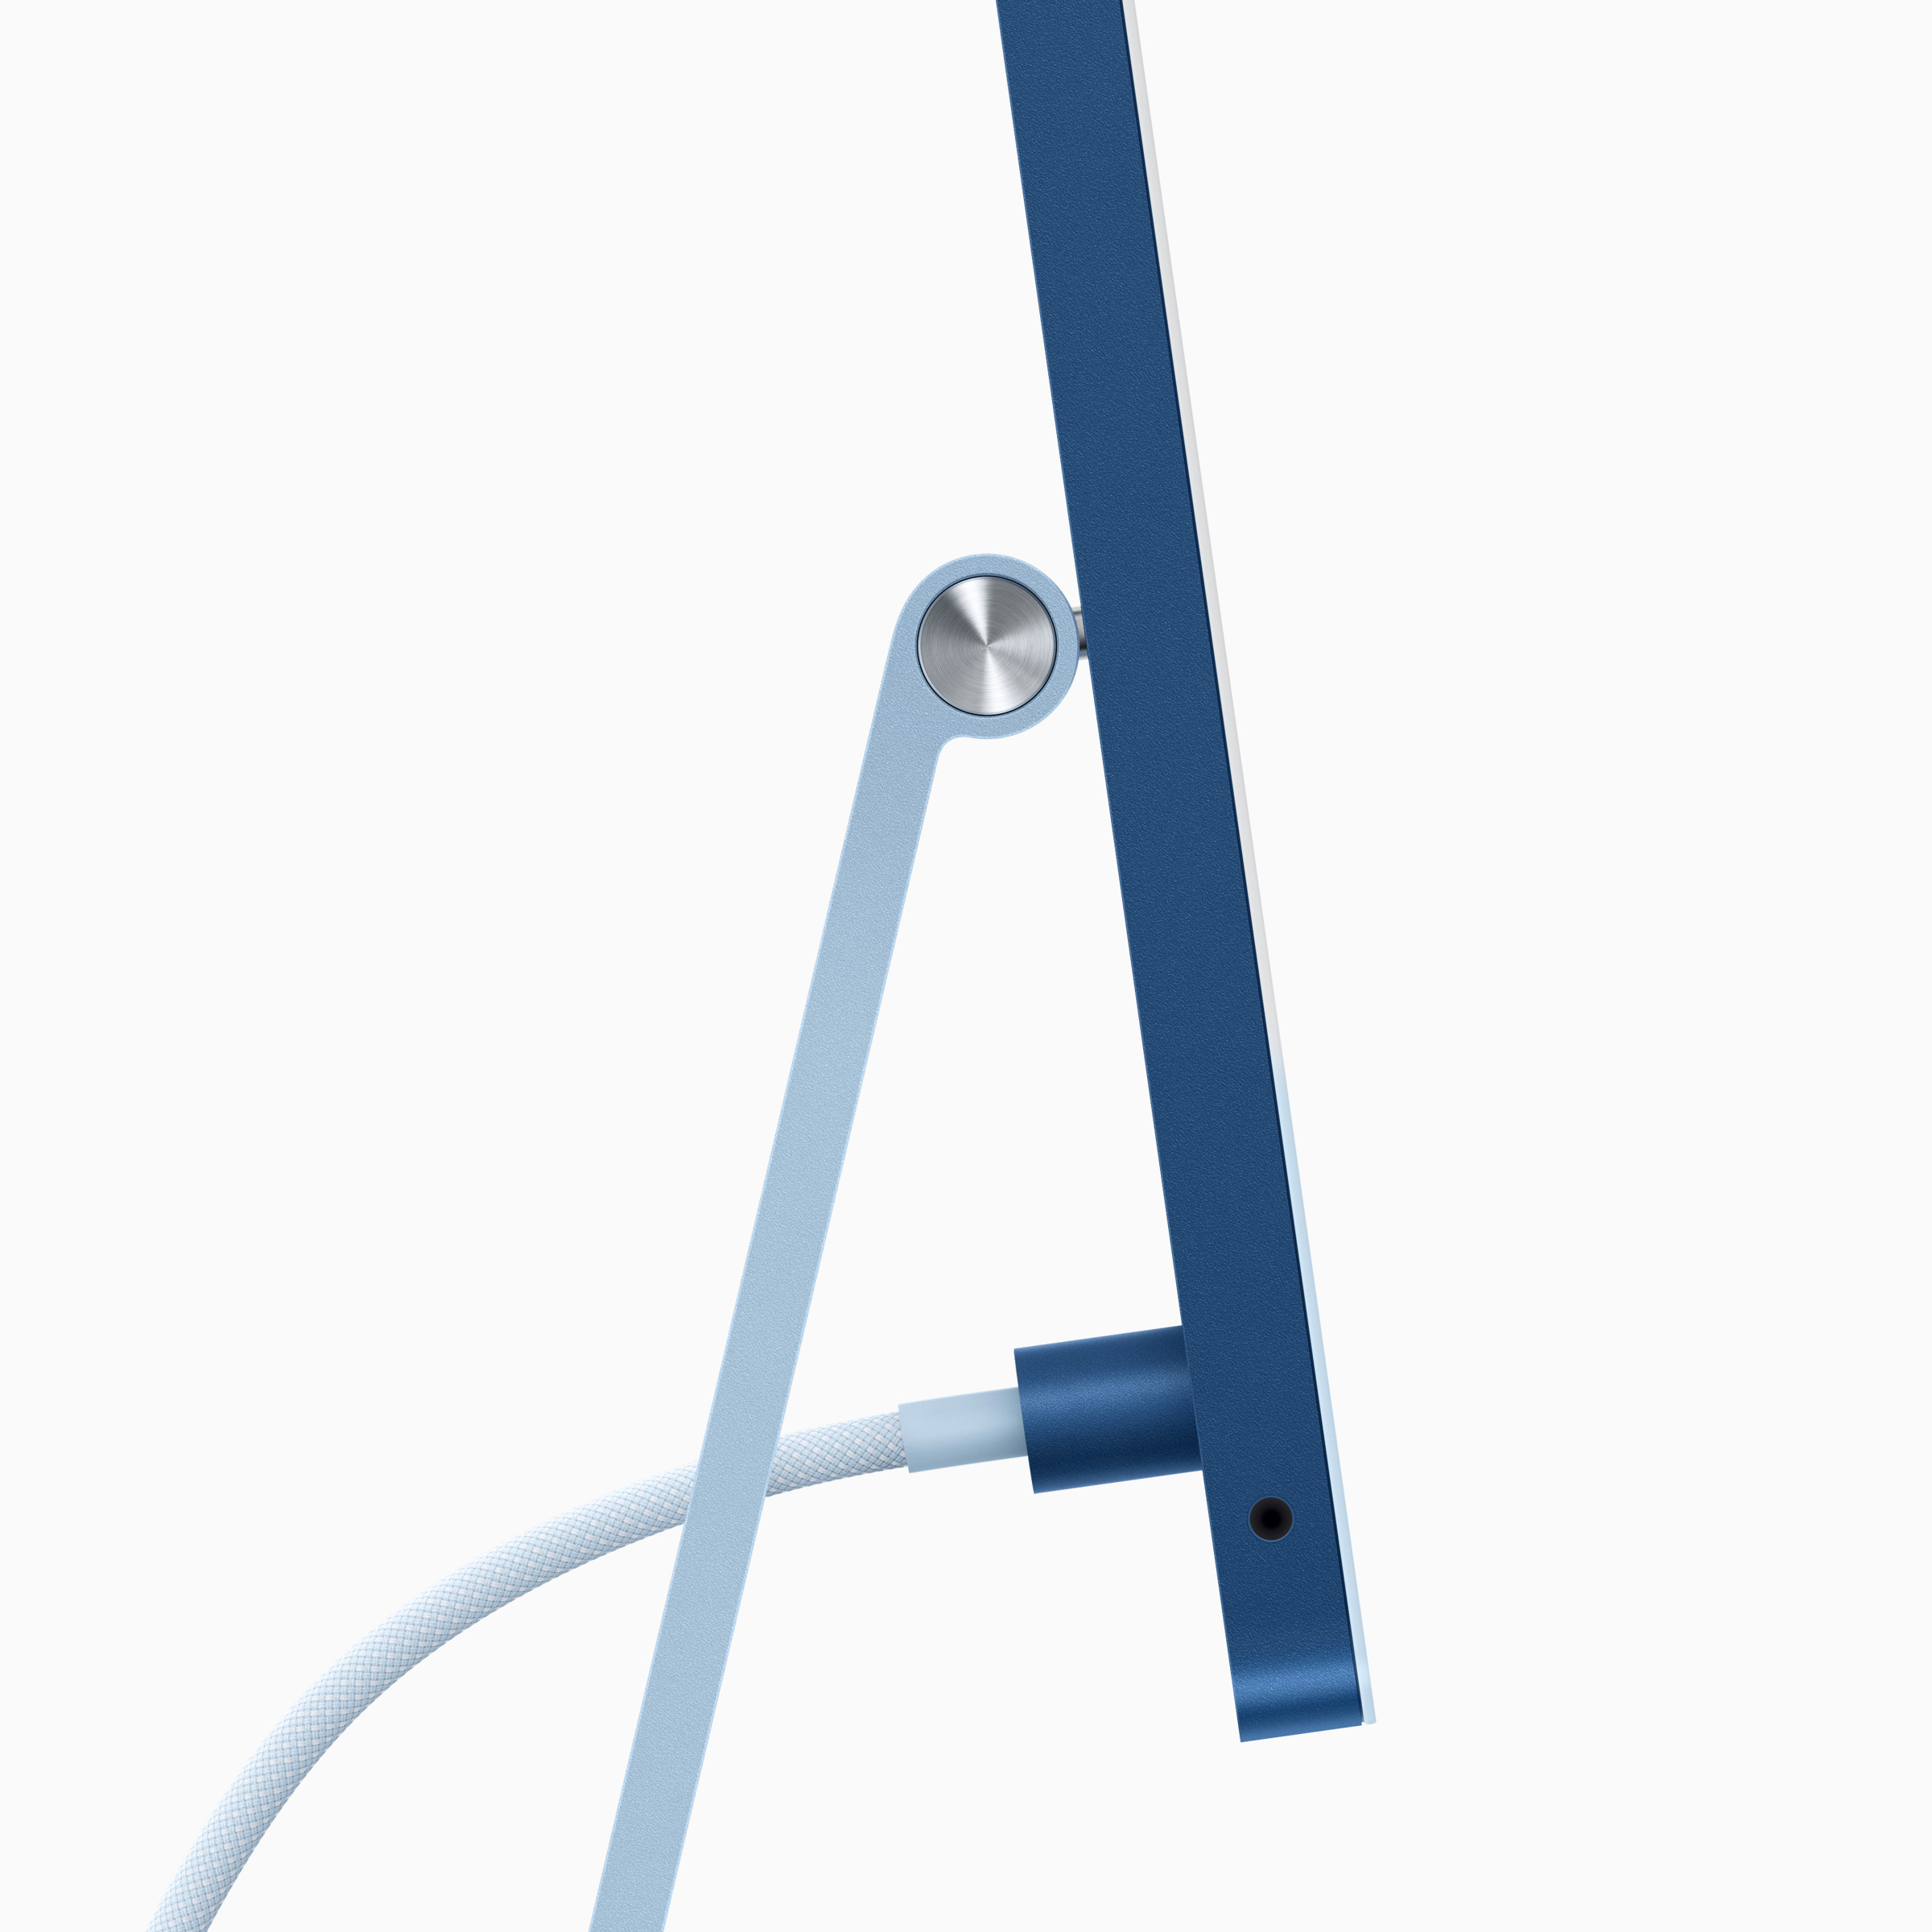 The iMac's magnetic power cable.